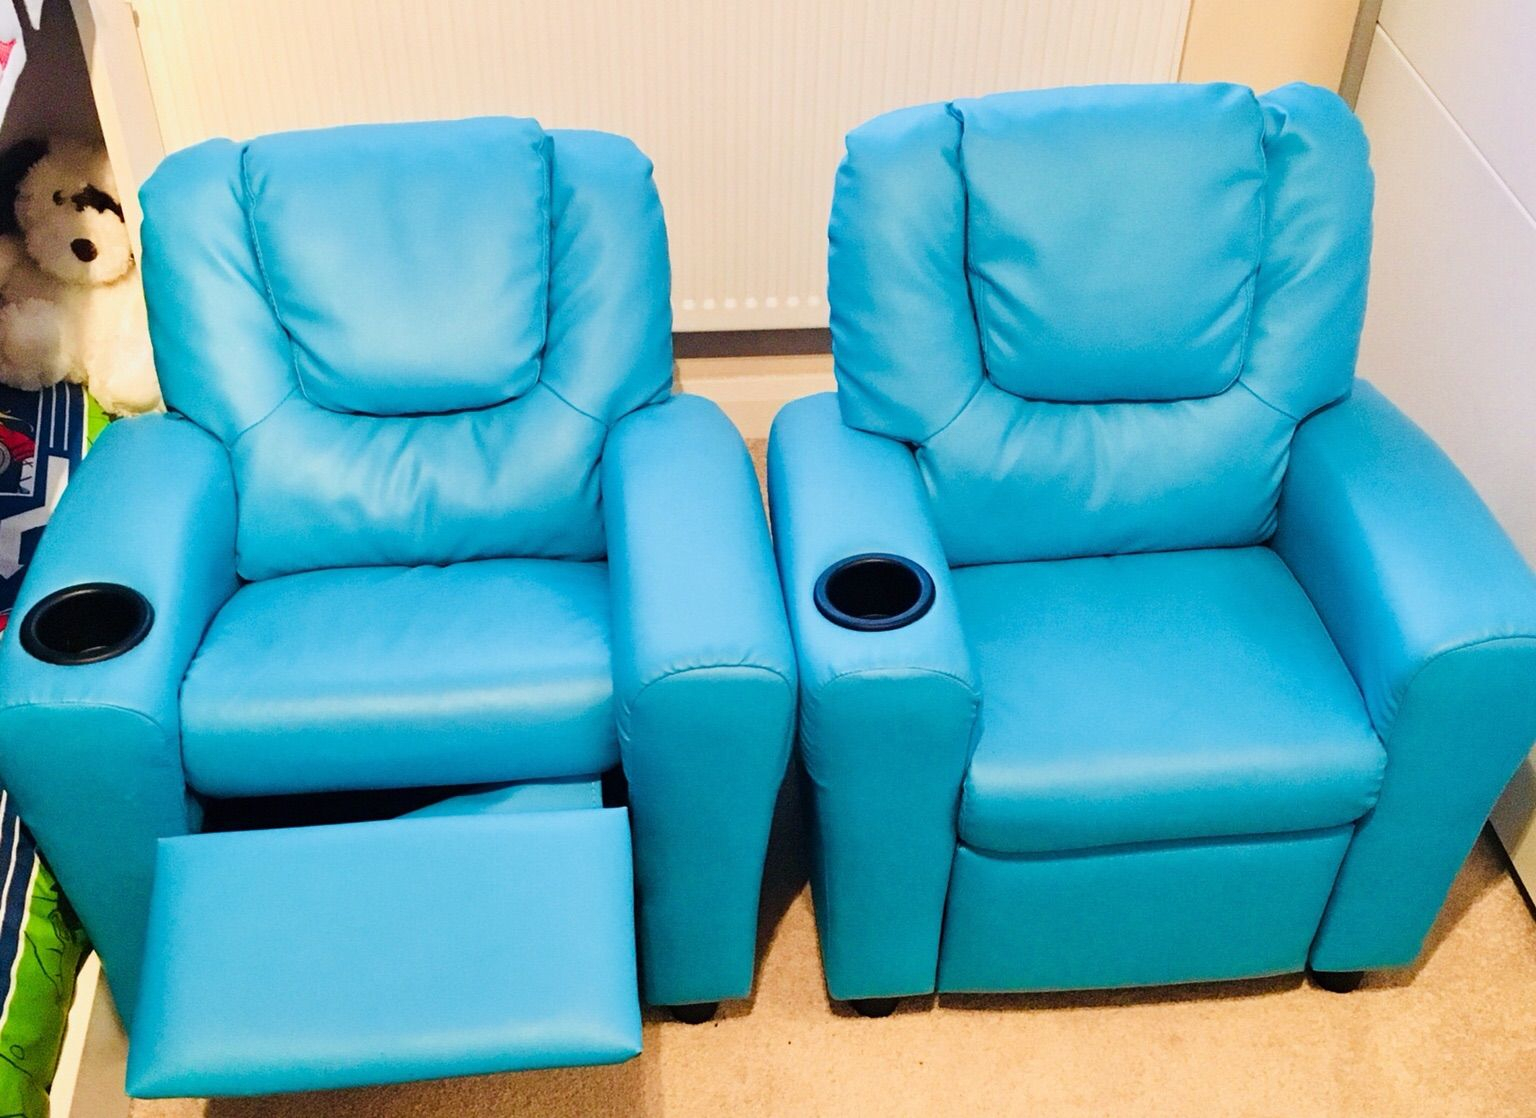 Https://en.shpock/i/woxs3Bq6Fyvzxwdn/ 2018 02 24T14:41:59+ Throughout Moana Blue Leather Power Reclining Sofa Chairs With Usb (Photo 18 of 25)